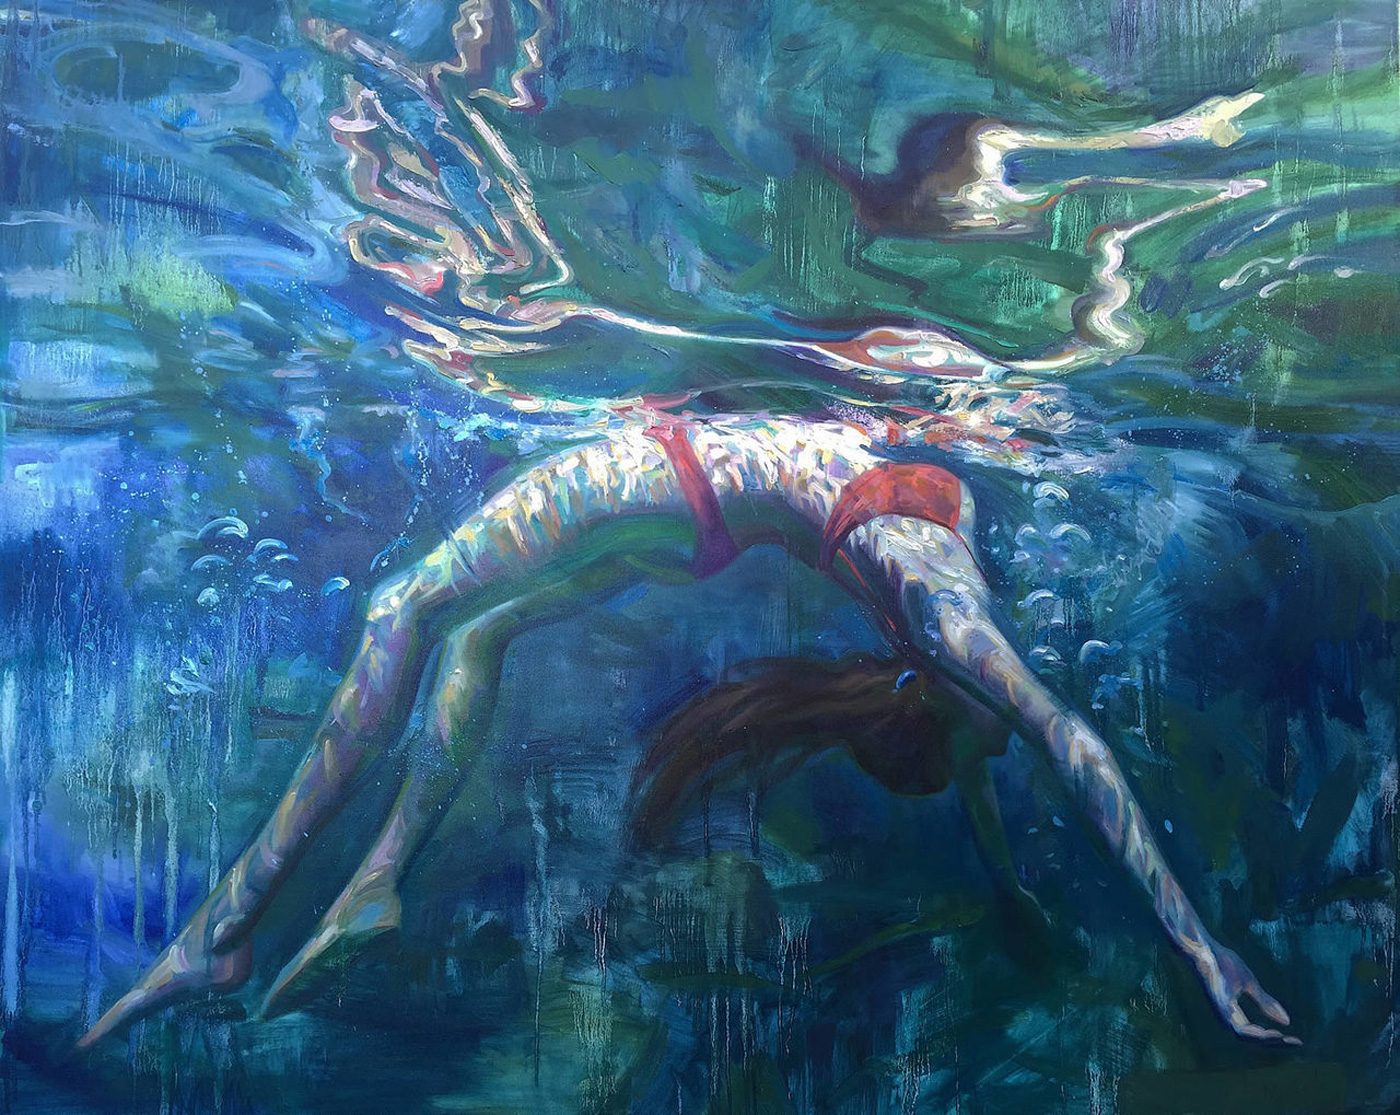 Oil Painting of Girl Balanced Weight Under Water